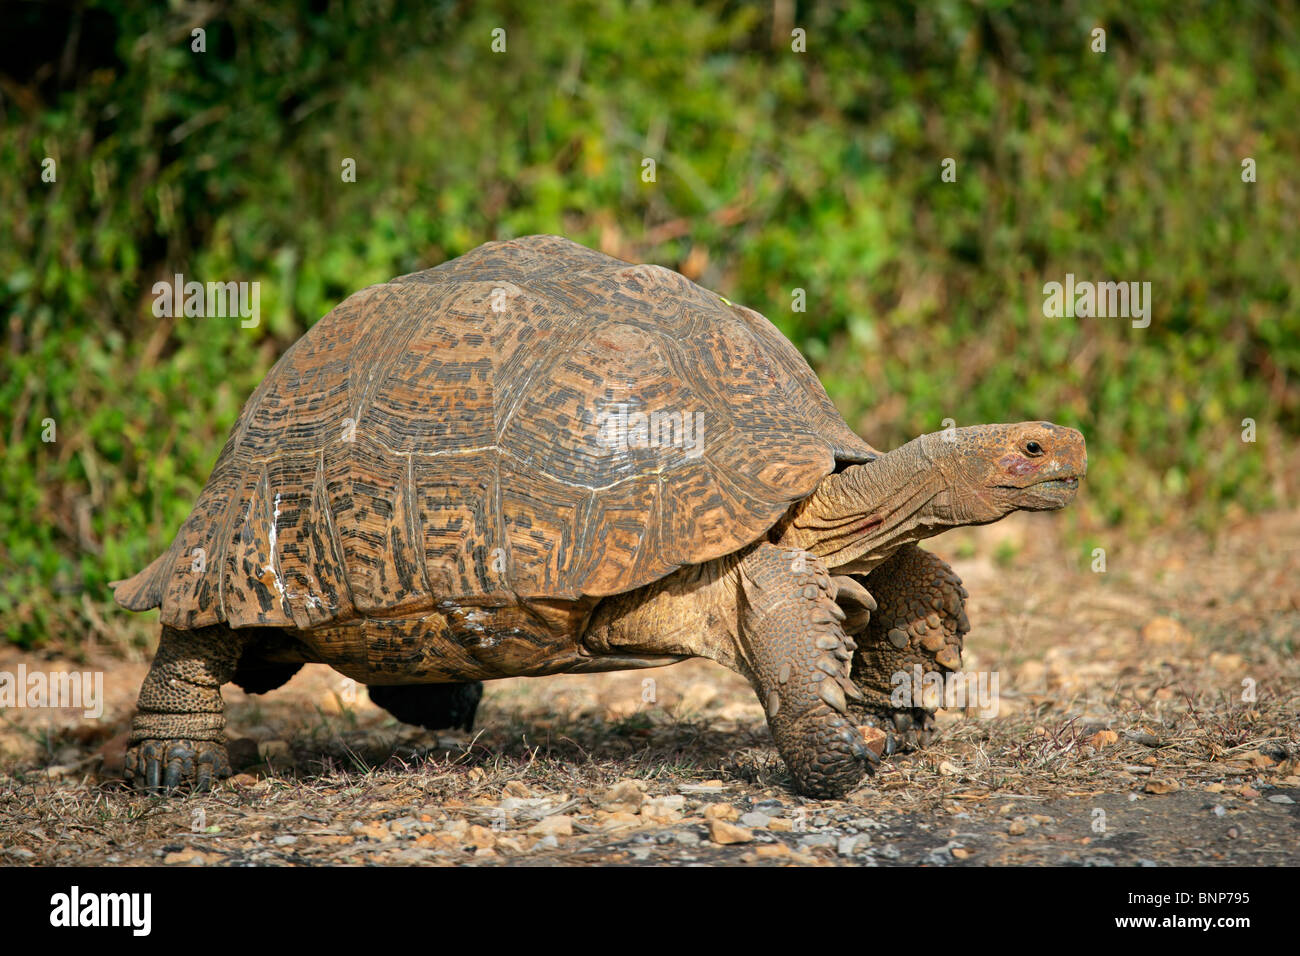 Mountain or leopard tortoise (Geochelone pardalis), South Africa - Stock Image